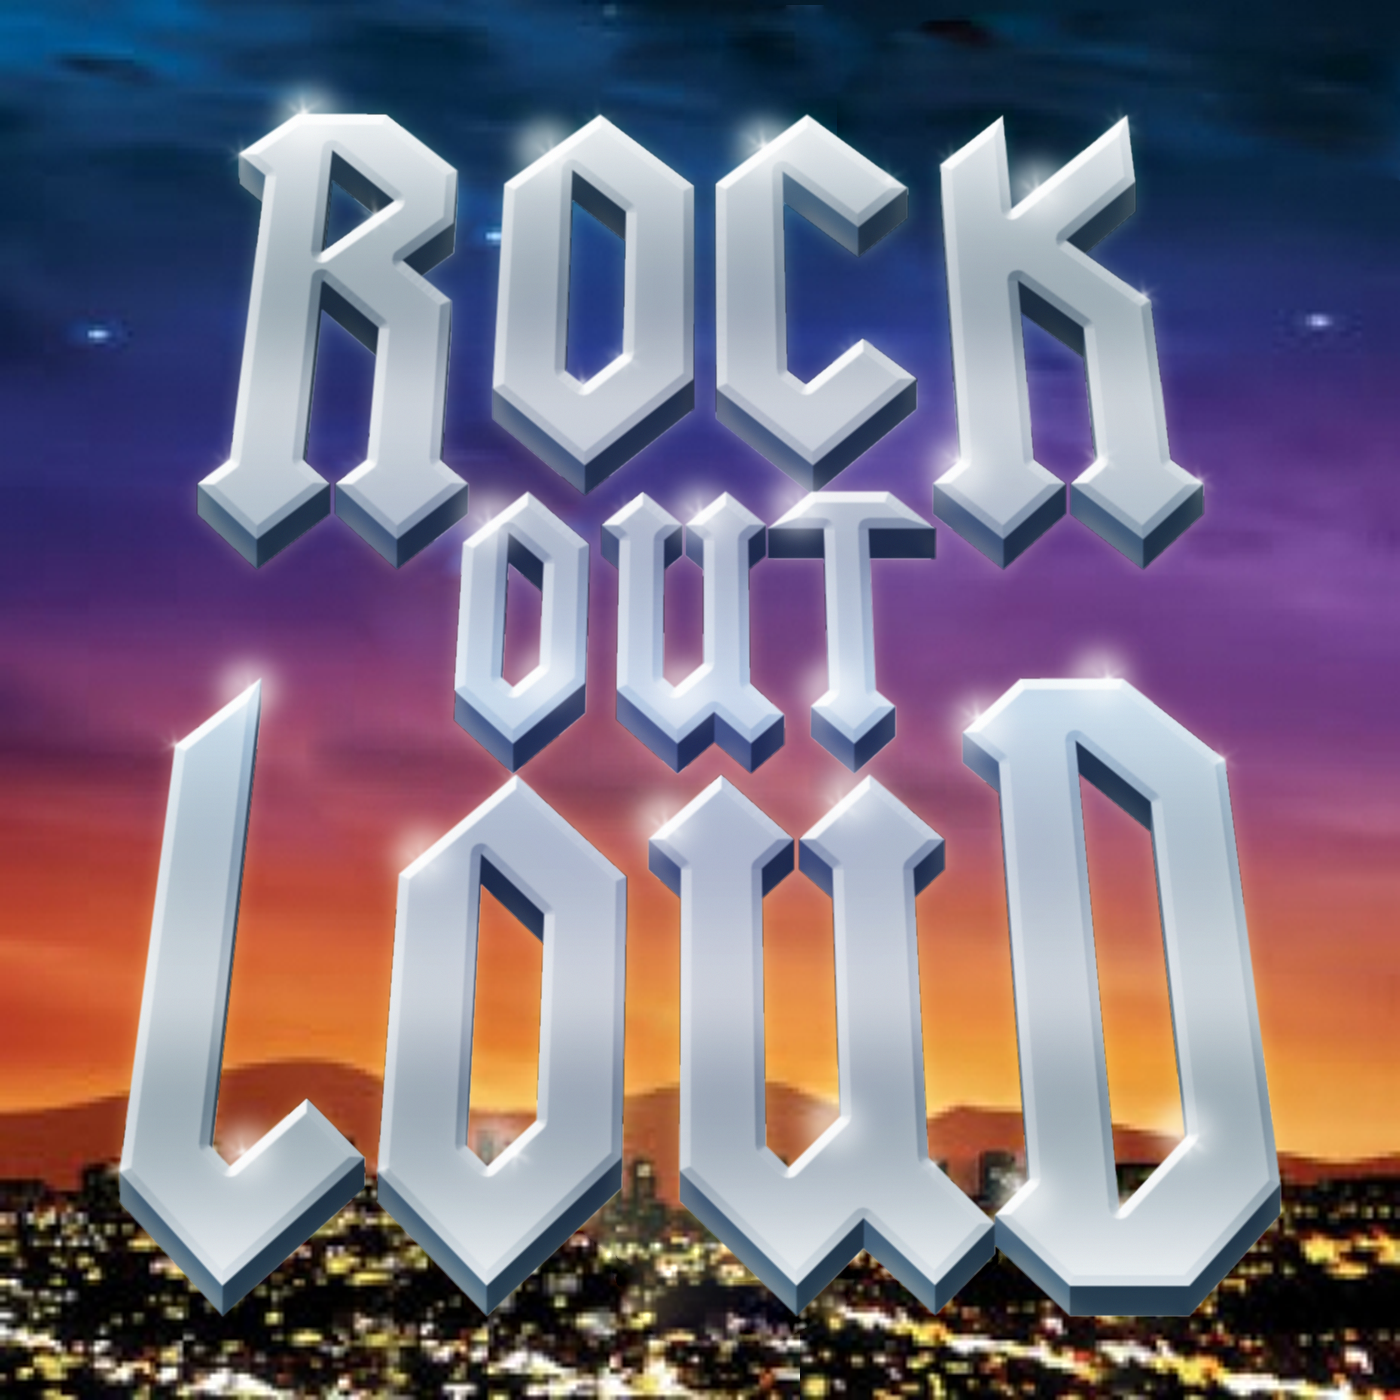 Rock Out Loud – Geek Out Loud